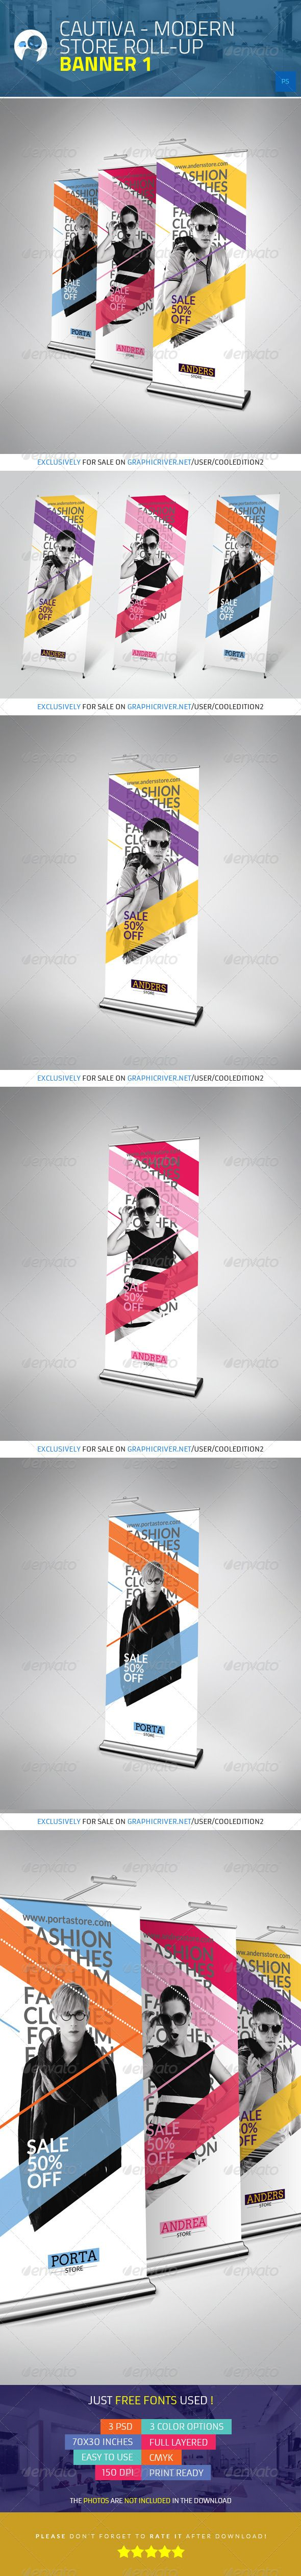 1000 images about roll up banners on pinterest retractable banner beauty salons and banner. Black Bedroom Furniture Sets. Home Design Ideas